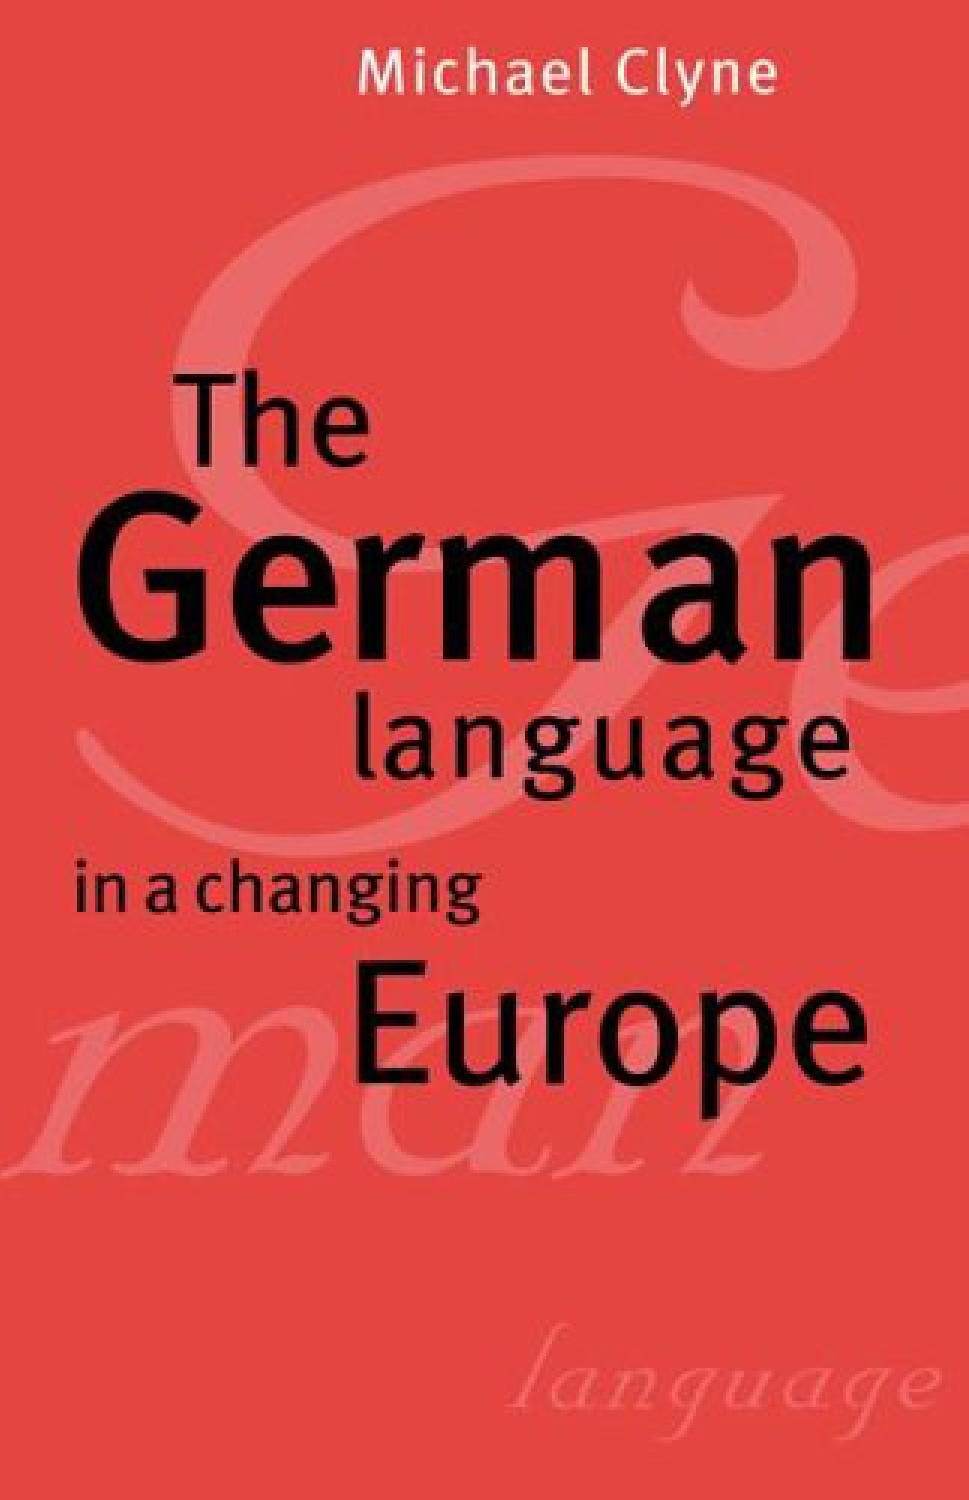 Roberto Albrecht Innendesign Eitorf Clyne The German Language In A Changing Europe By Vlad Shoo Issuu